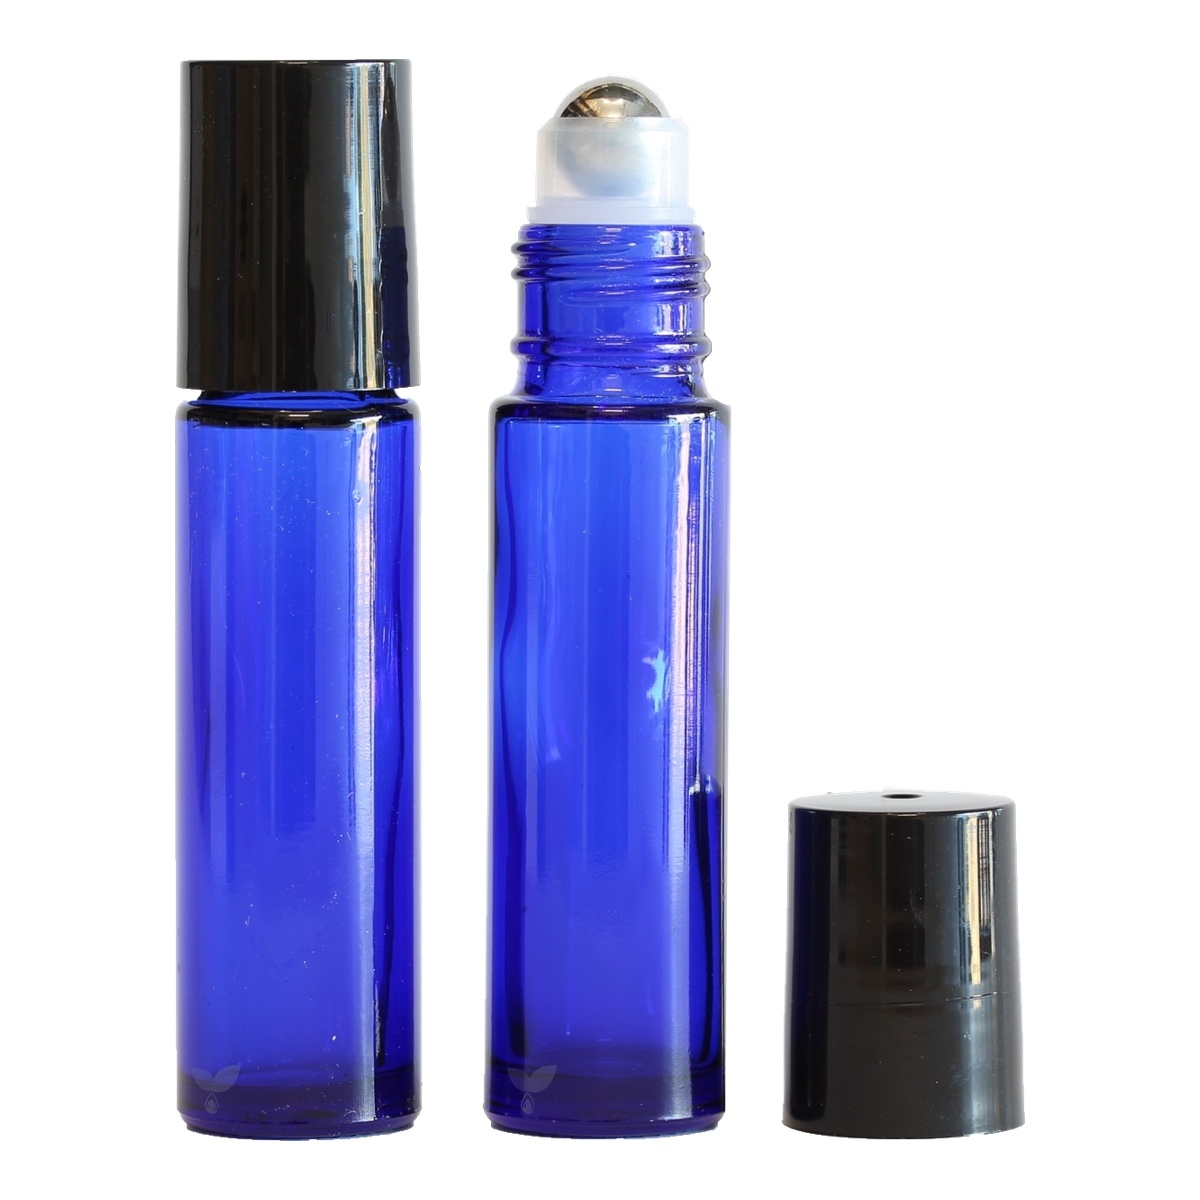 Roller Australia 10ml Cobalt Blue Thick Glass Roller Bottle Oils For Life Australia